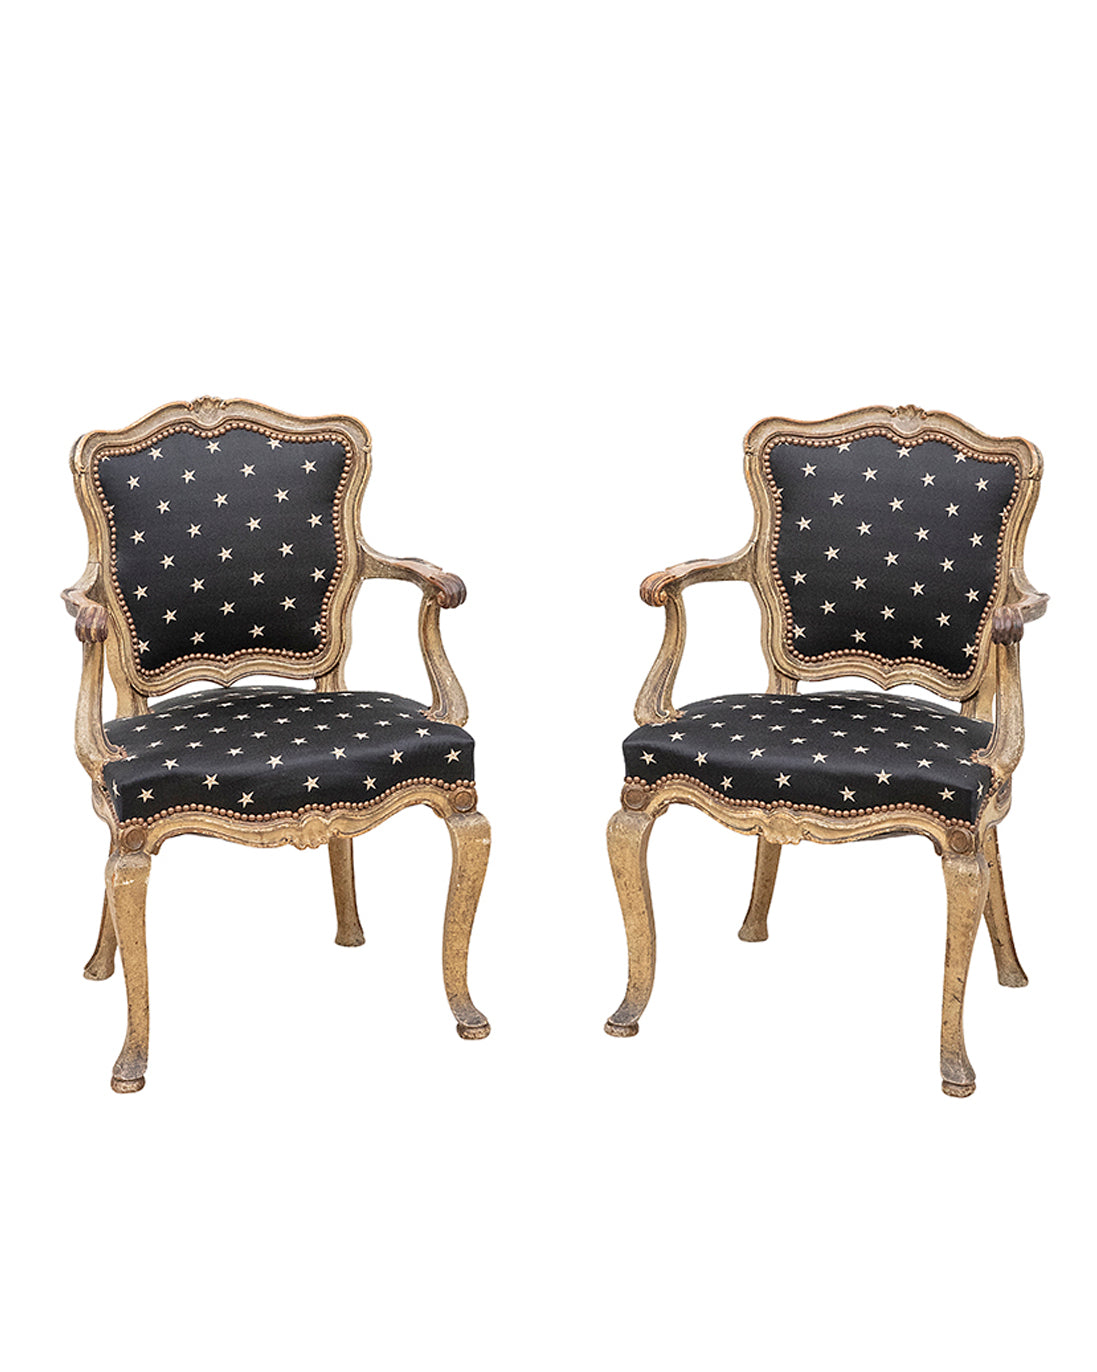 Pair of Italian armchairs. XIX century